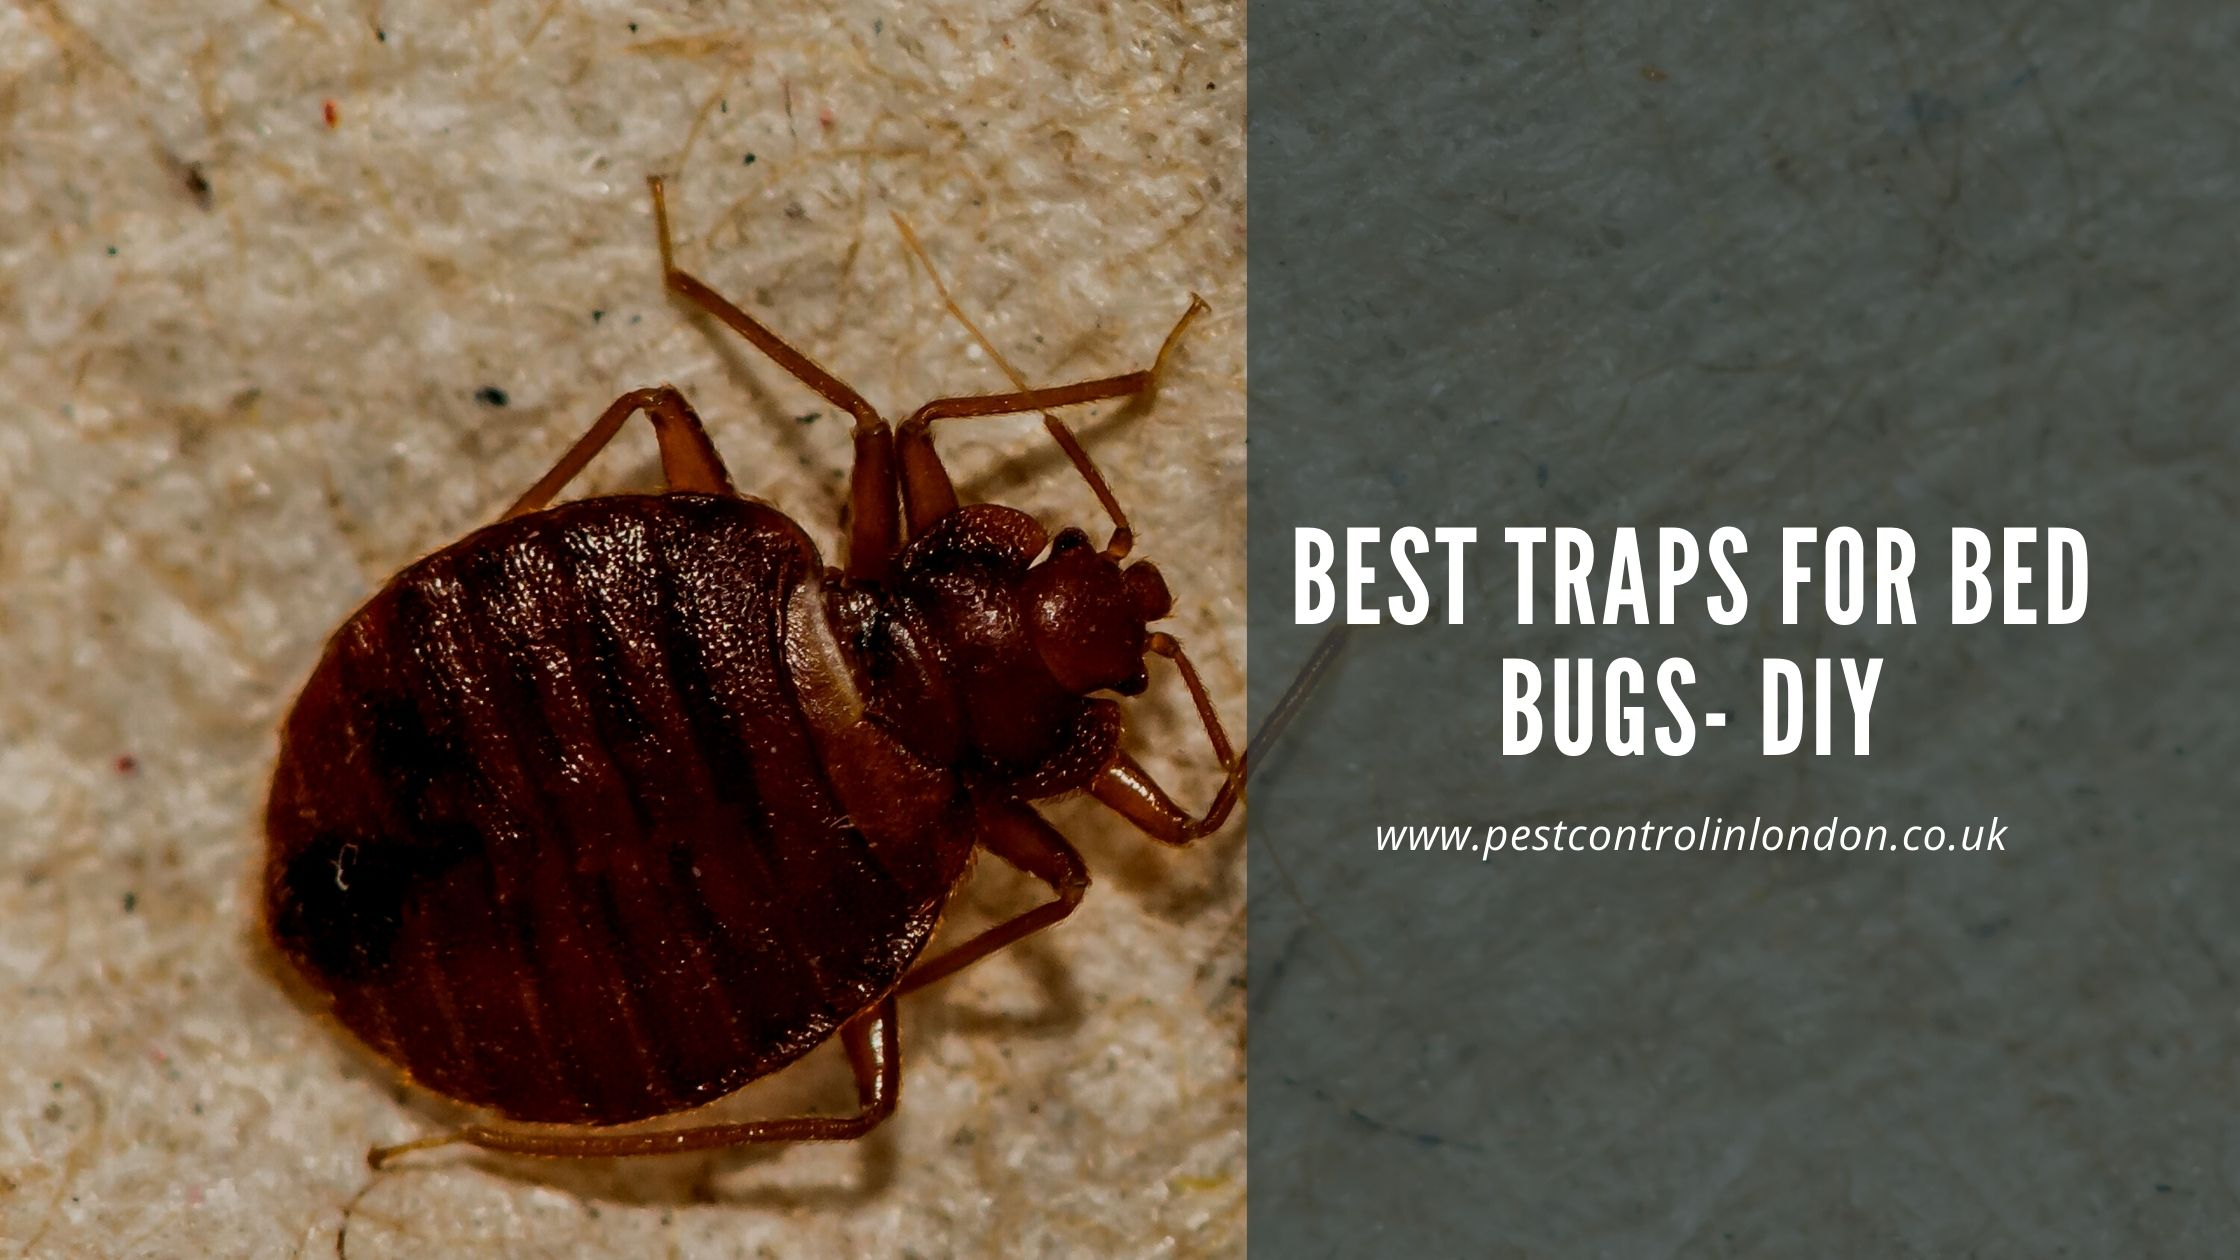 Best Traps for Bed Bugs- DIY